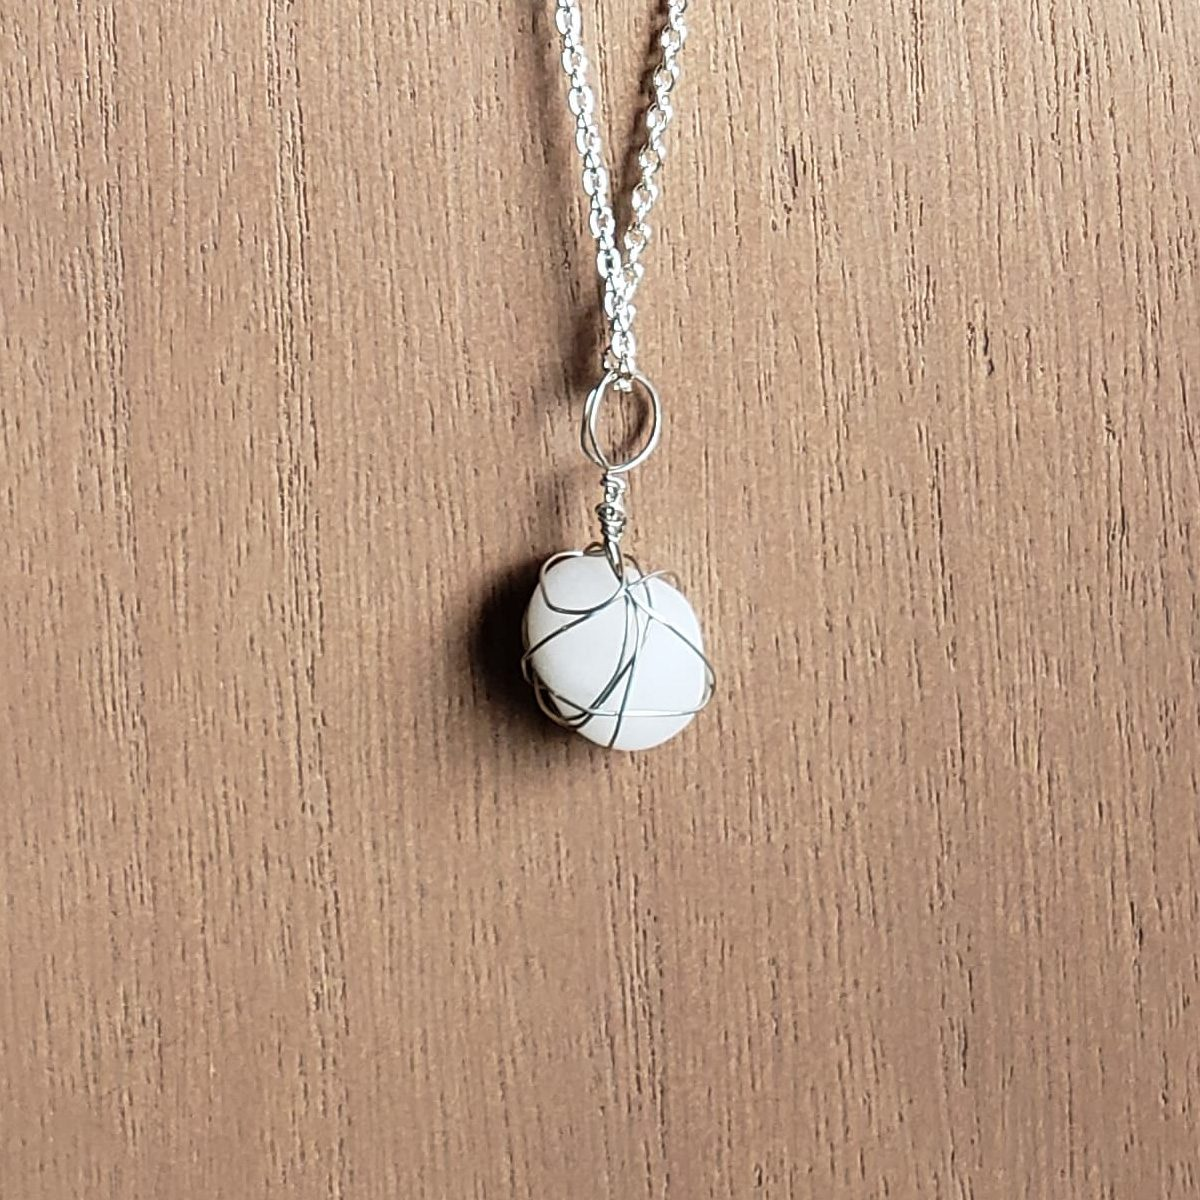 Handcrafted white pearl necklace